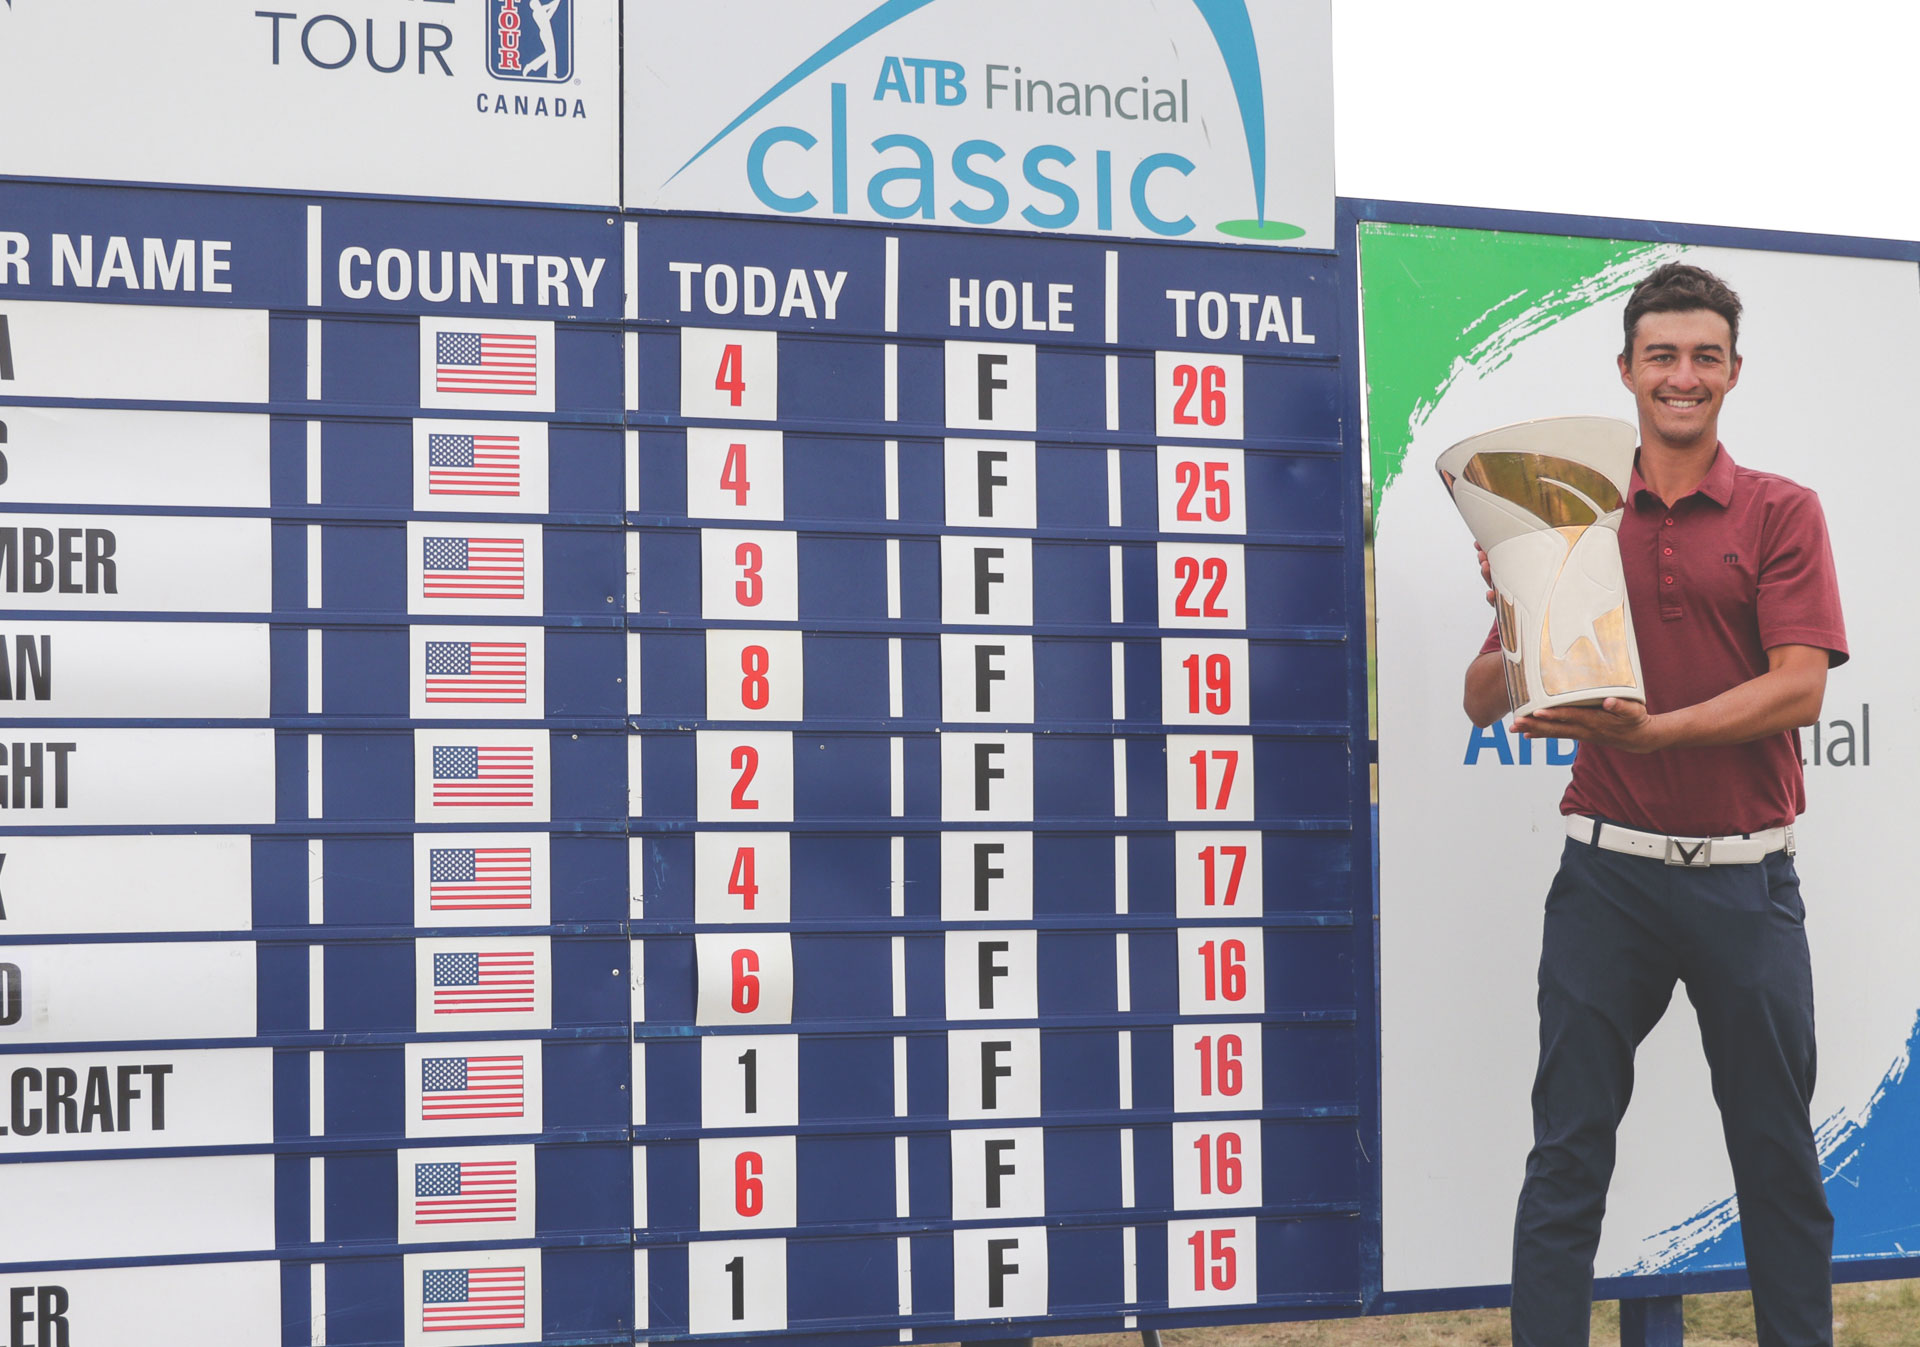 ATB Financial Classic champion Cory Pereira in 2018.